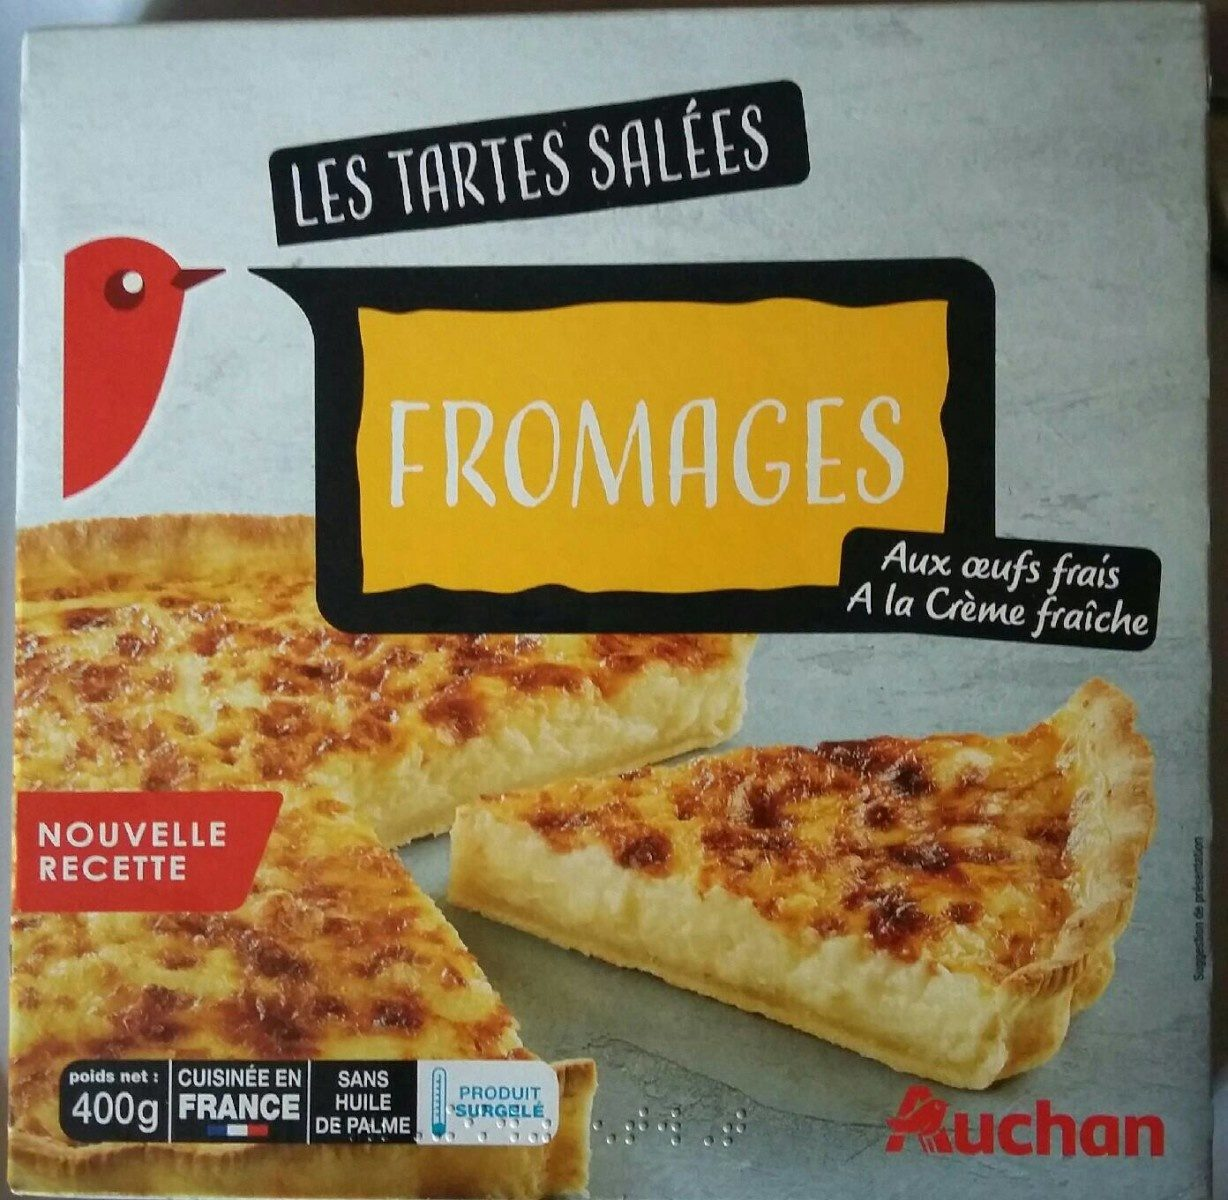 Tarte aux Fromages - Product - fr